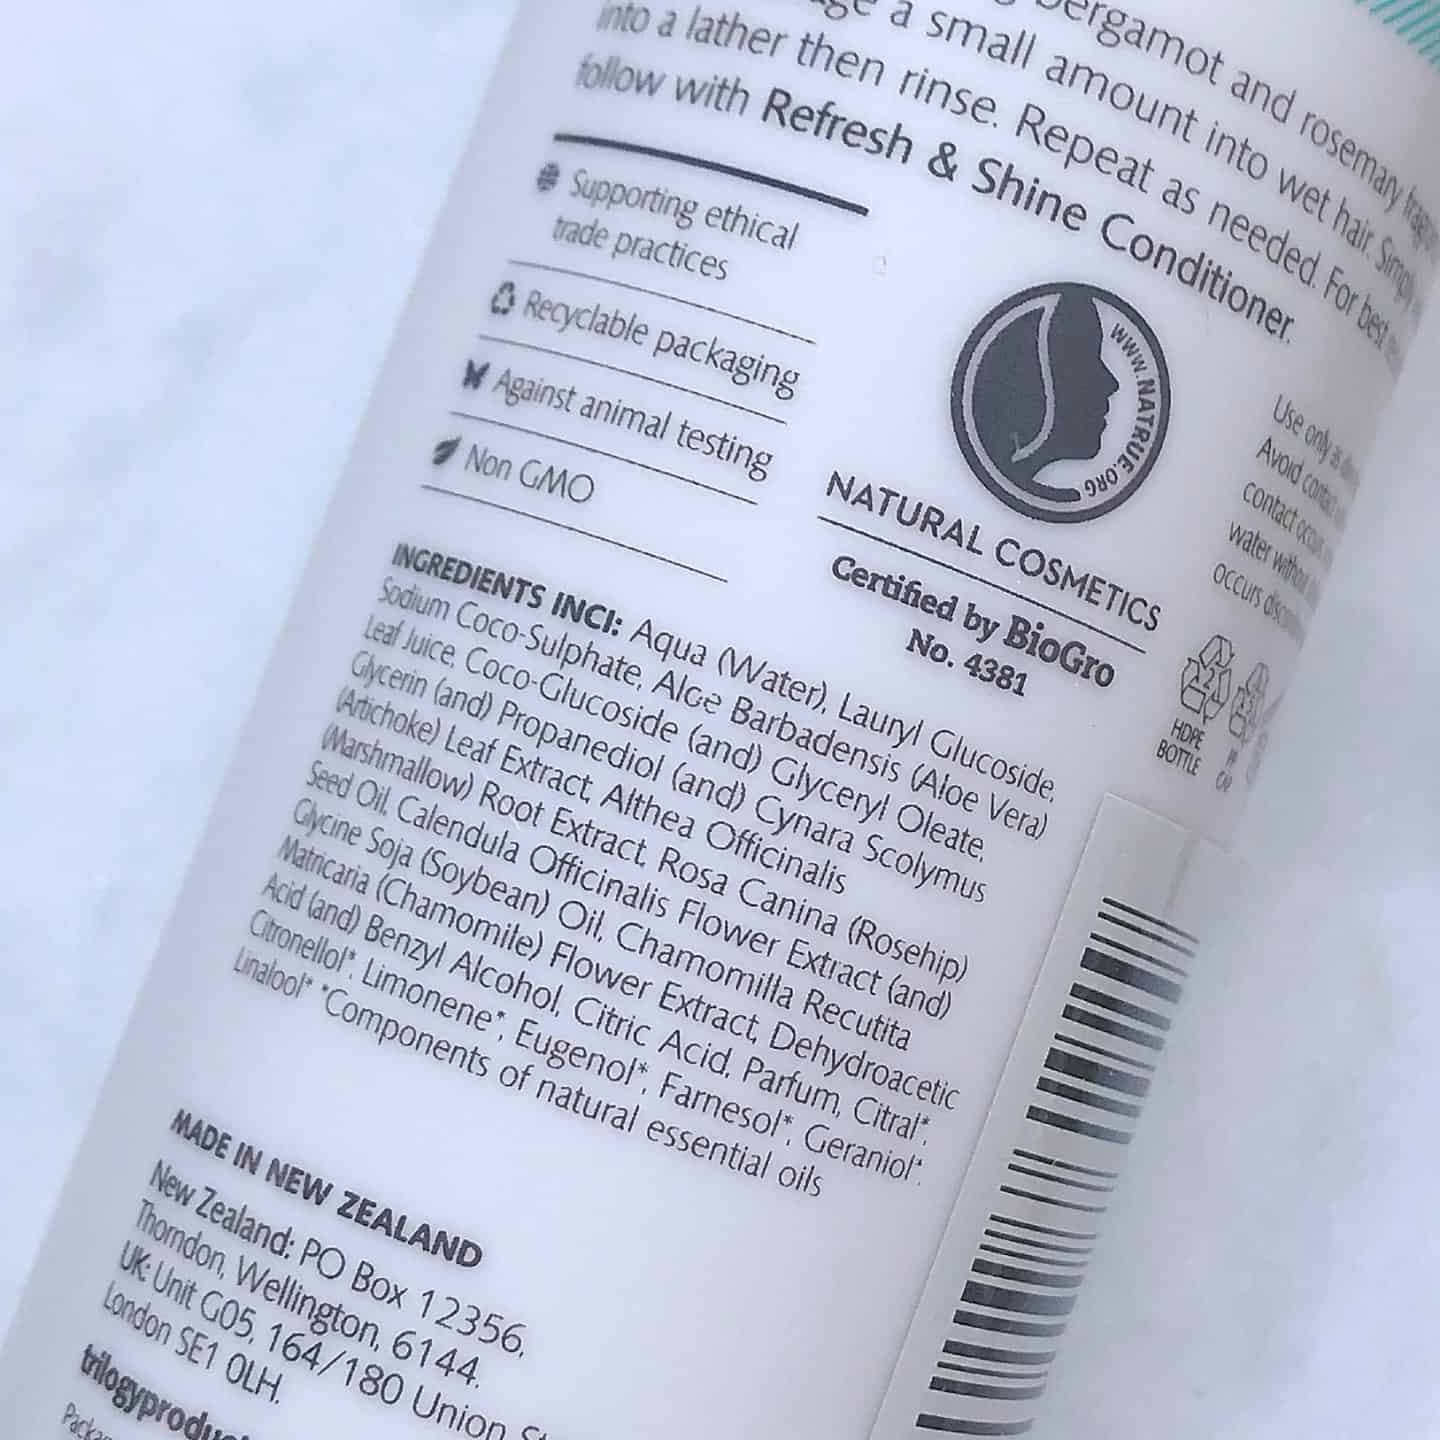 Trilogy Refresh and Shine Shampoo Review